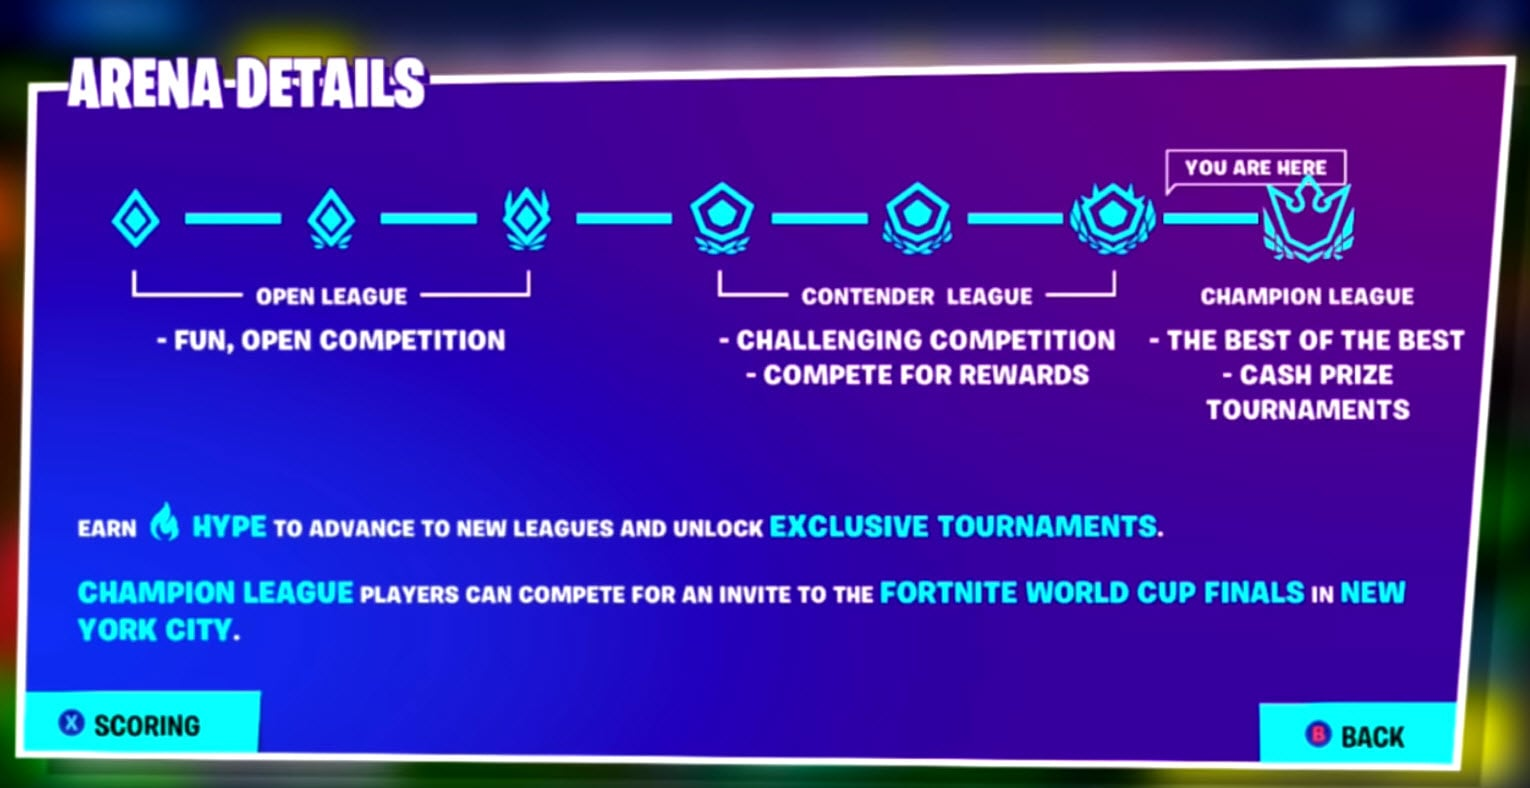 Fortnite's New Arena Mode – Everything You Need To Know About Ranked Mode  in Fortnite - Fortnite Nexus